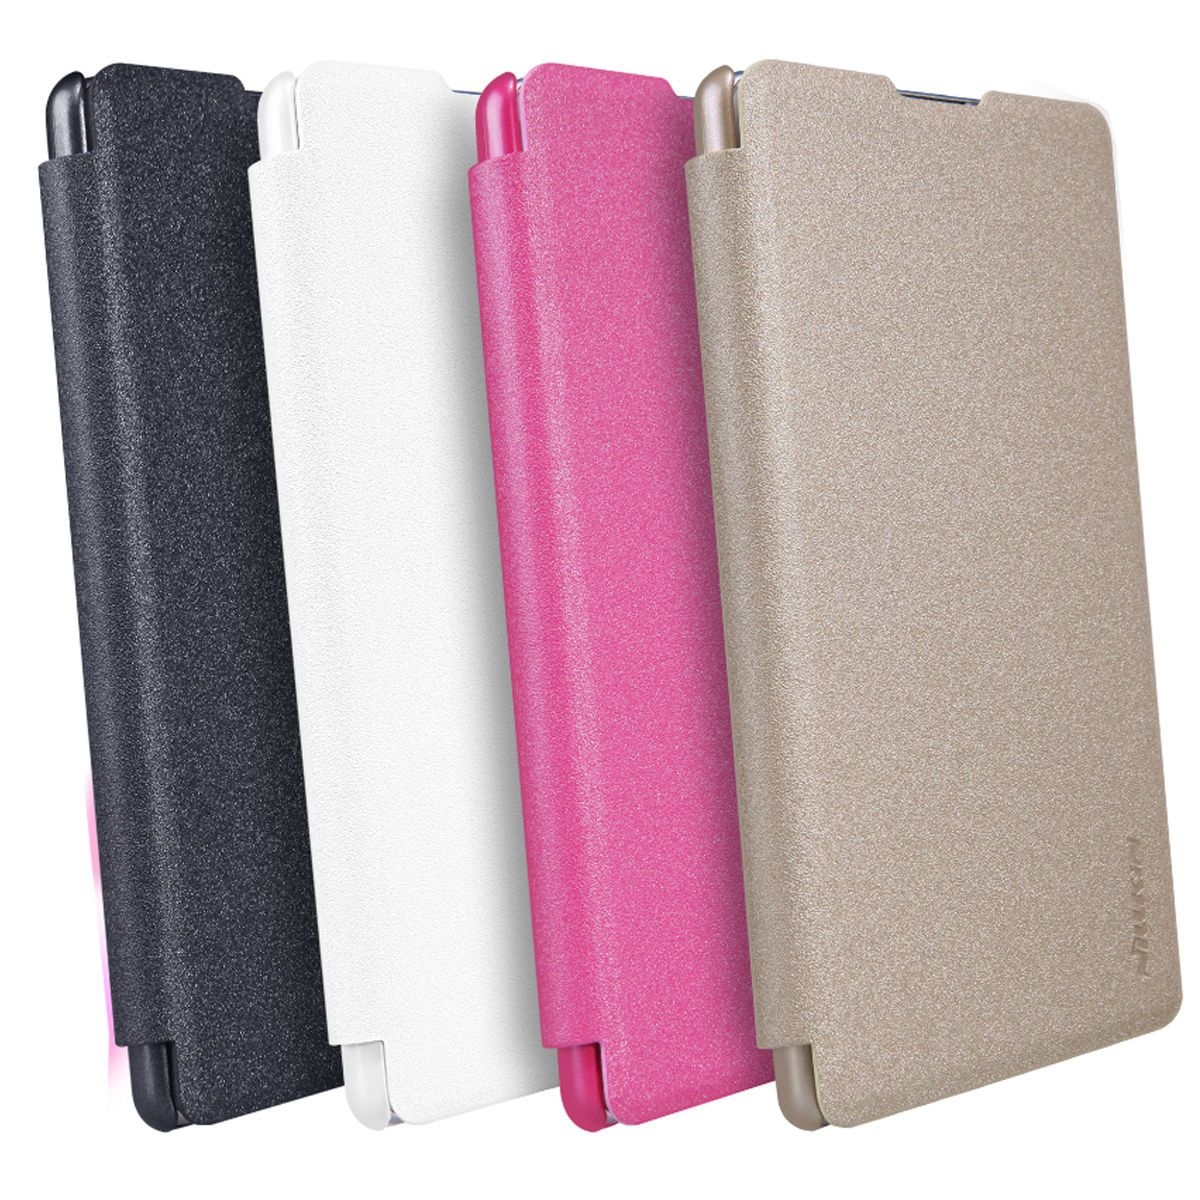 low priced f9c87 b35c7 $15.99 AUD - For Xperia Xa Case Nilkinn Sparkle Leather Case Cover ...